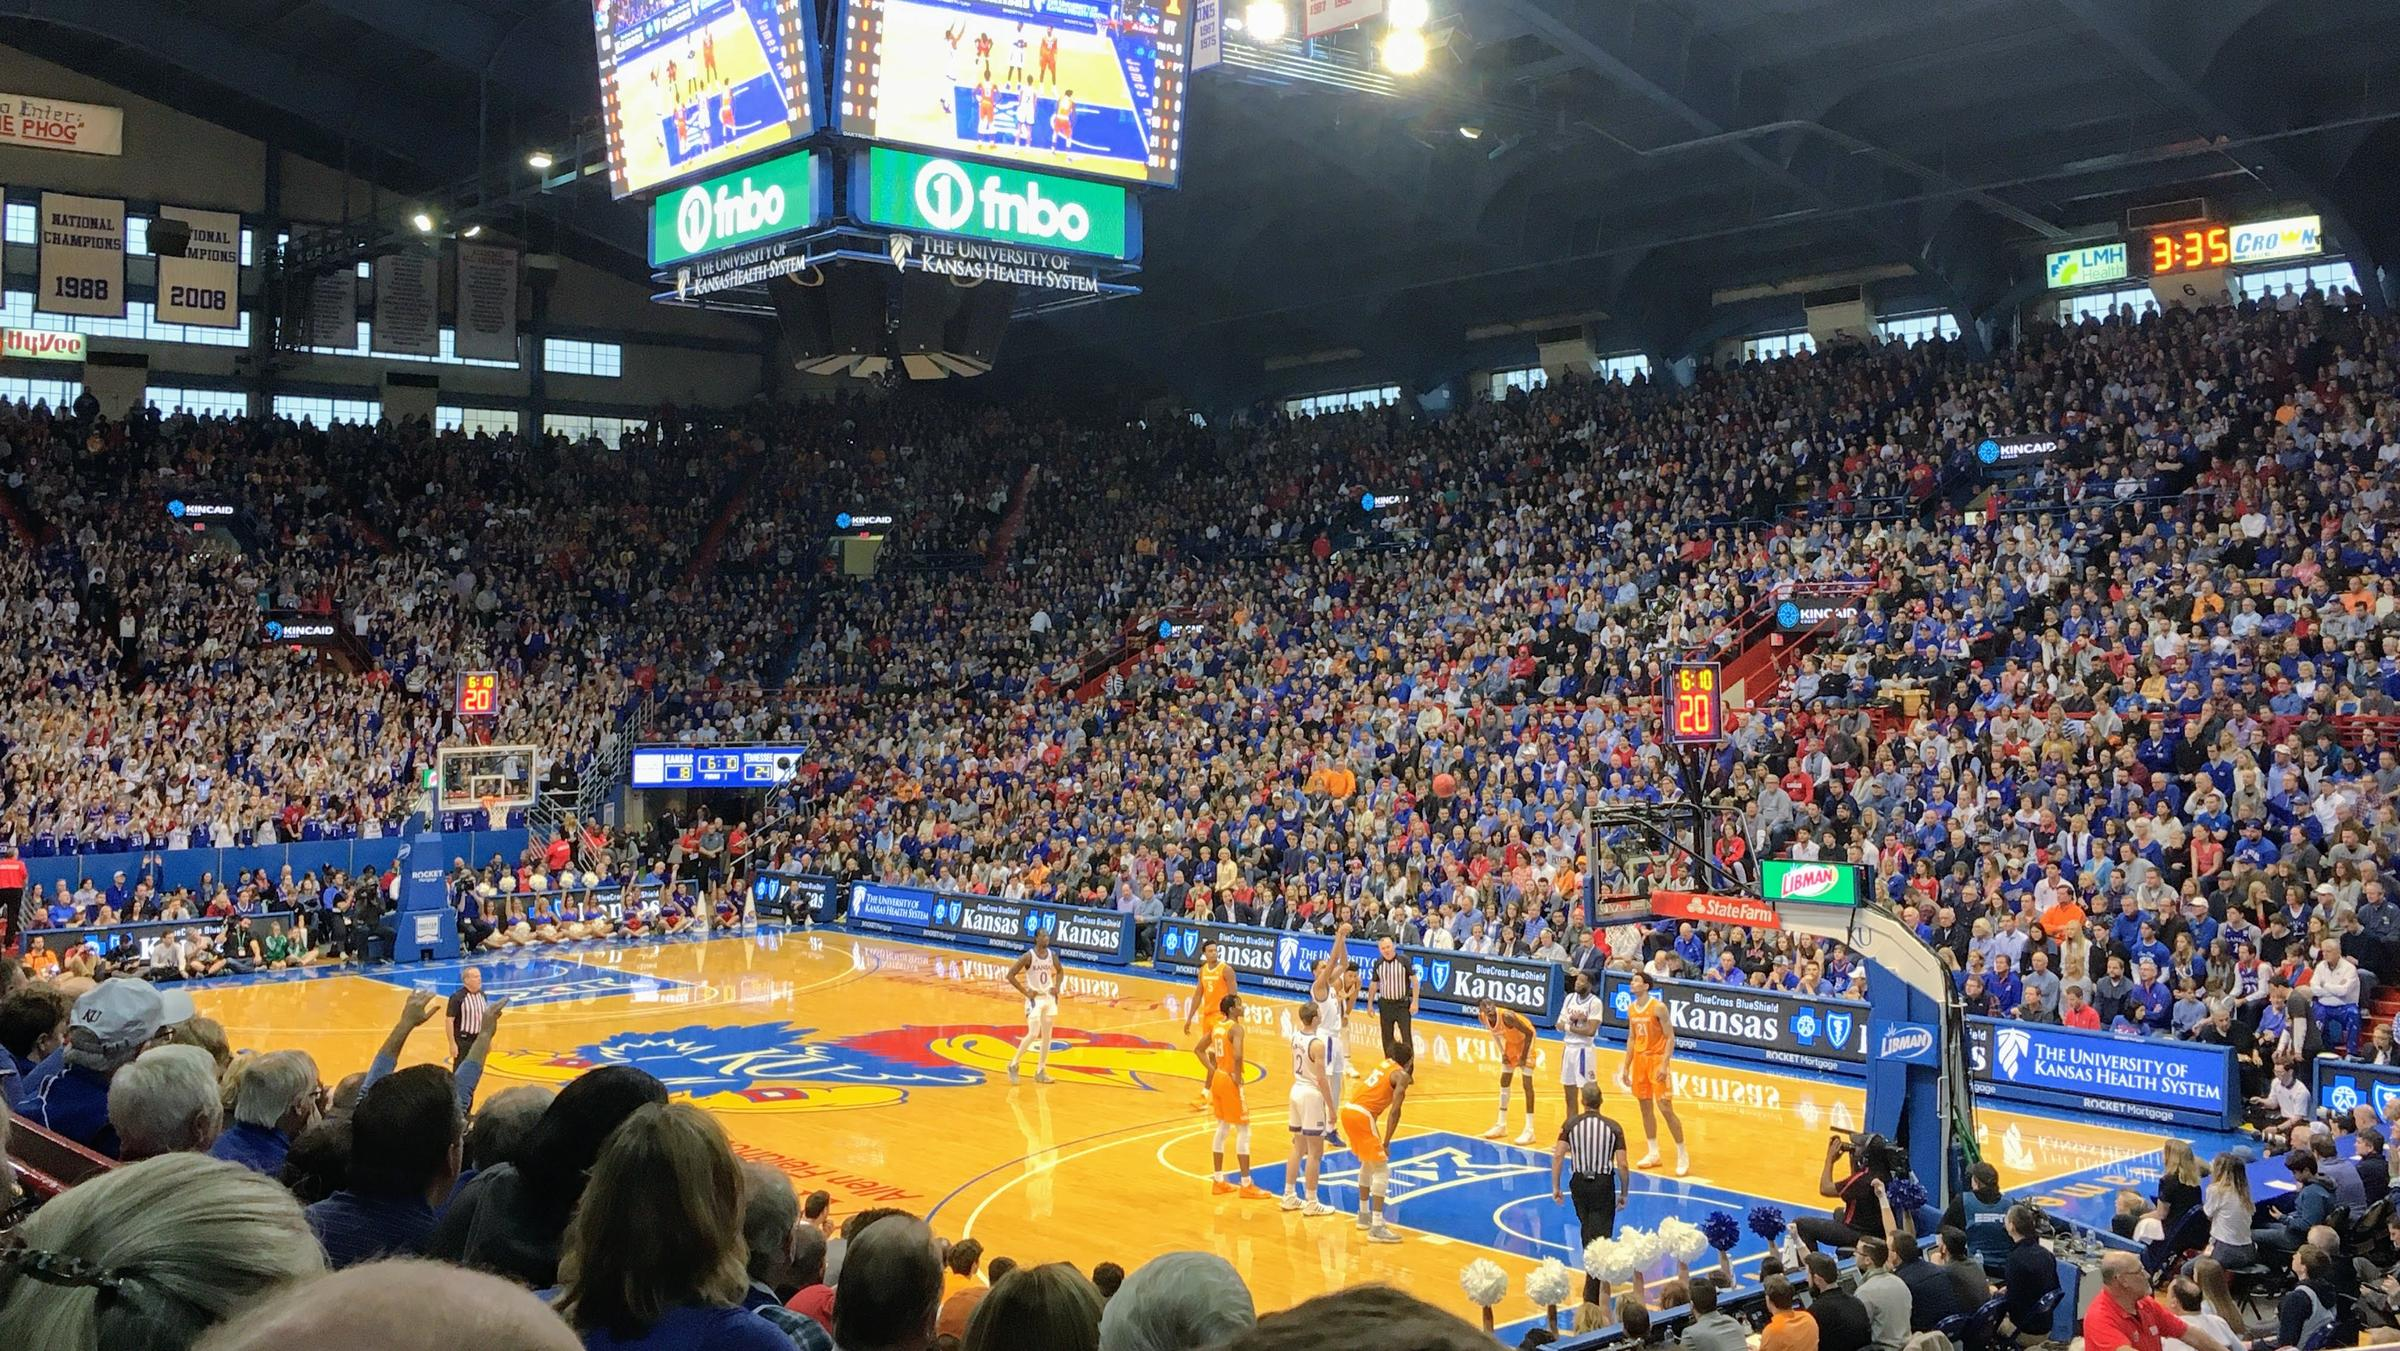 "The Kansas Jayhawks men's basketball team is currently ranked No. 1 in the nation. The school's athletics director says that if other schools have laws about endorsement deals and Kansas does not, KU would be ""at a disadvantage."" (Photo by Erica Hunzinger, Kansas News Service)"